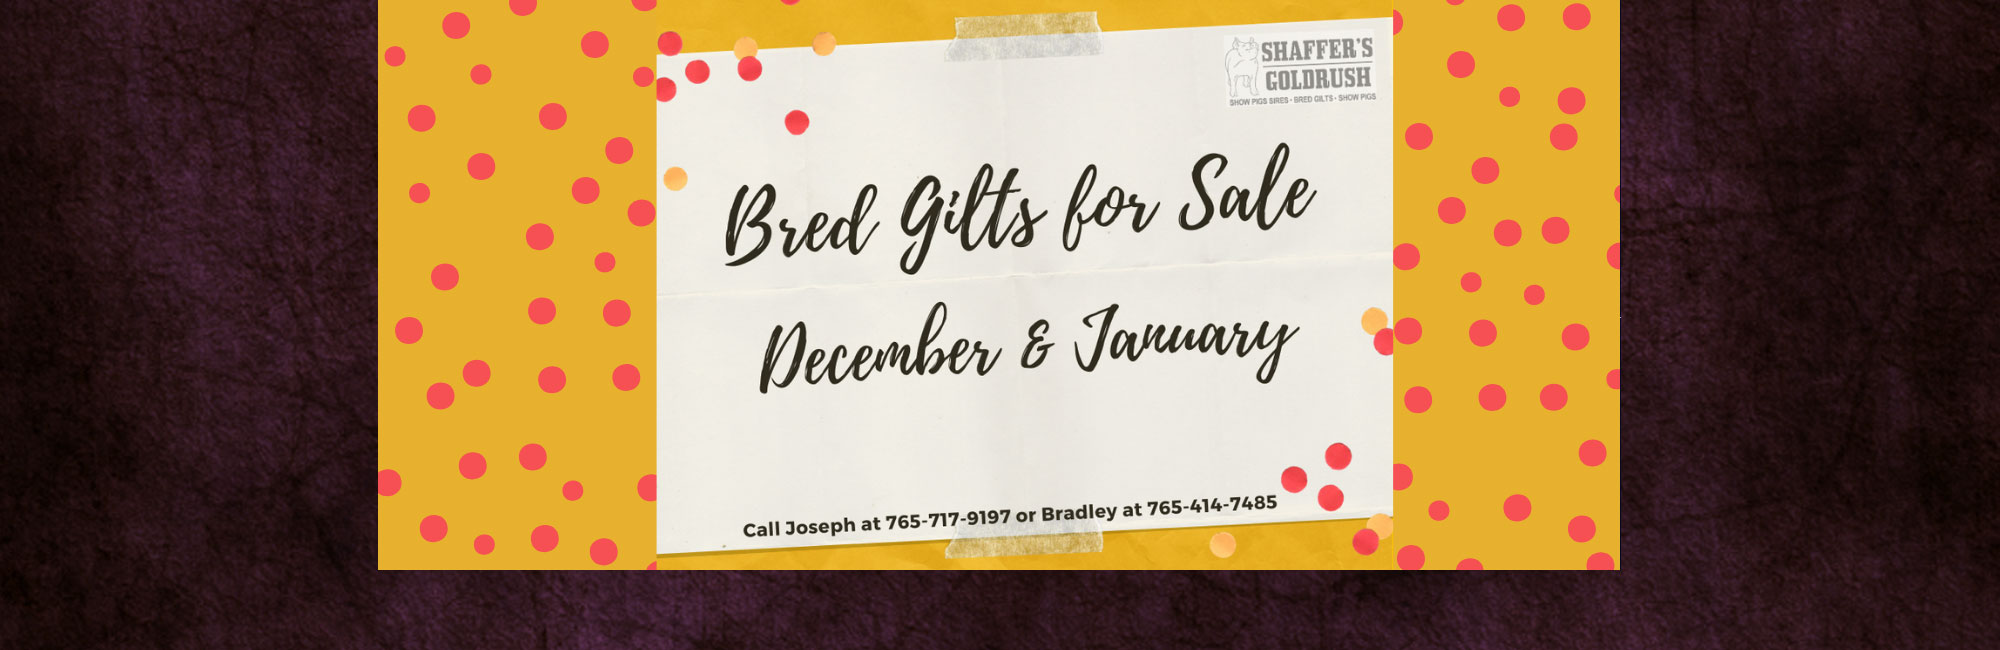 December & January Bred Gilts for Sale